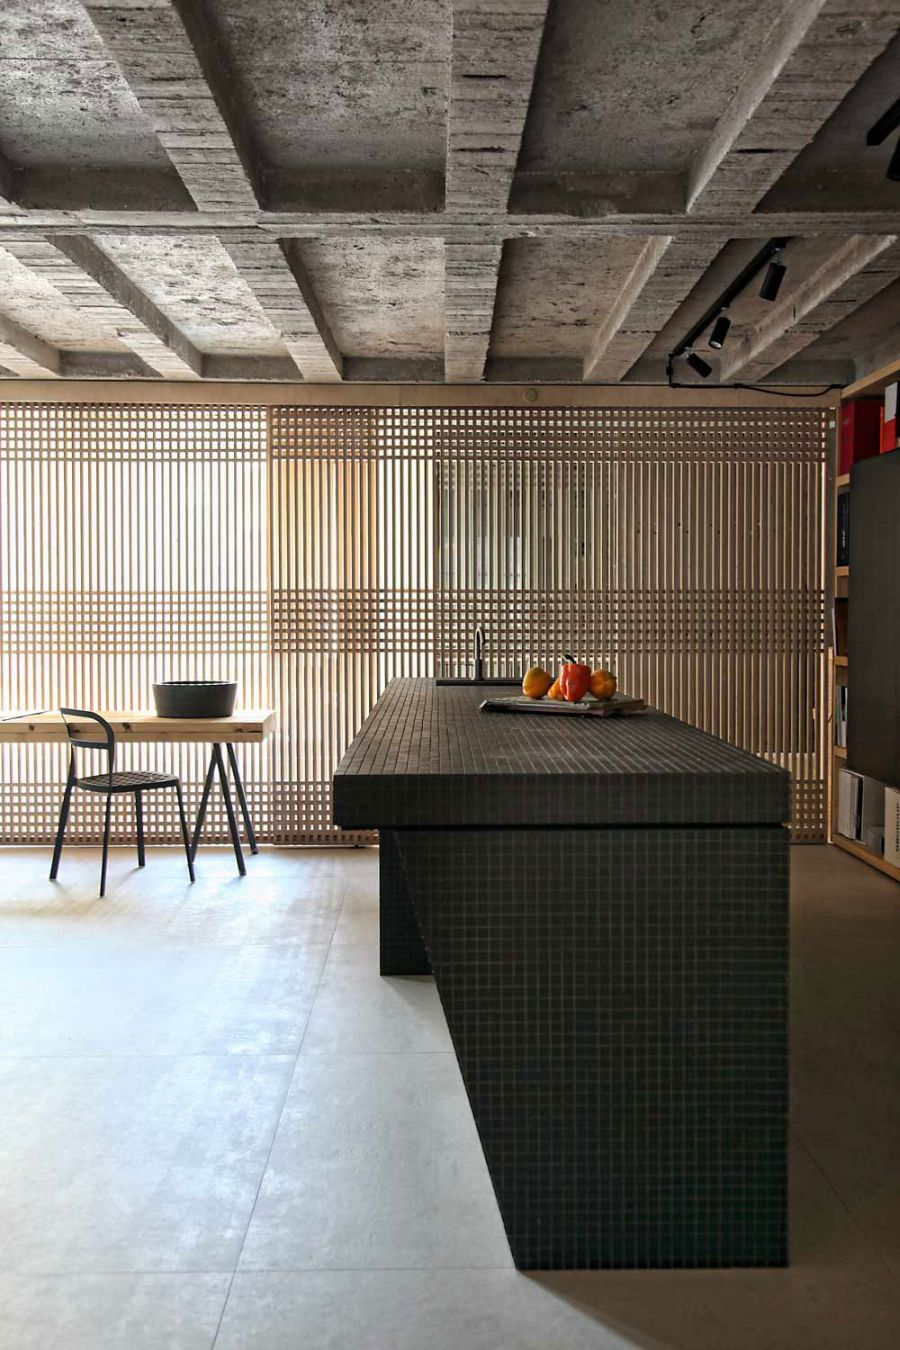 Exposed conceret ceiling offers the industrial look